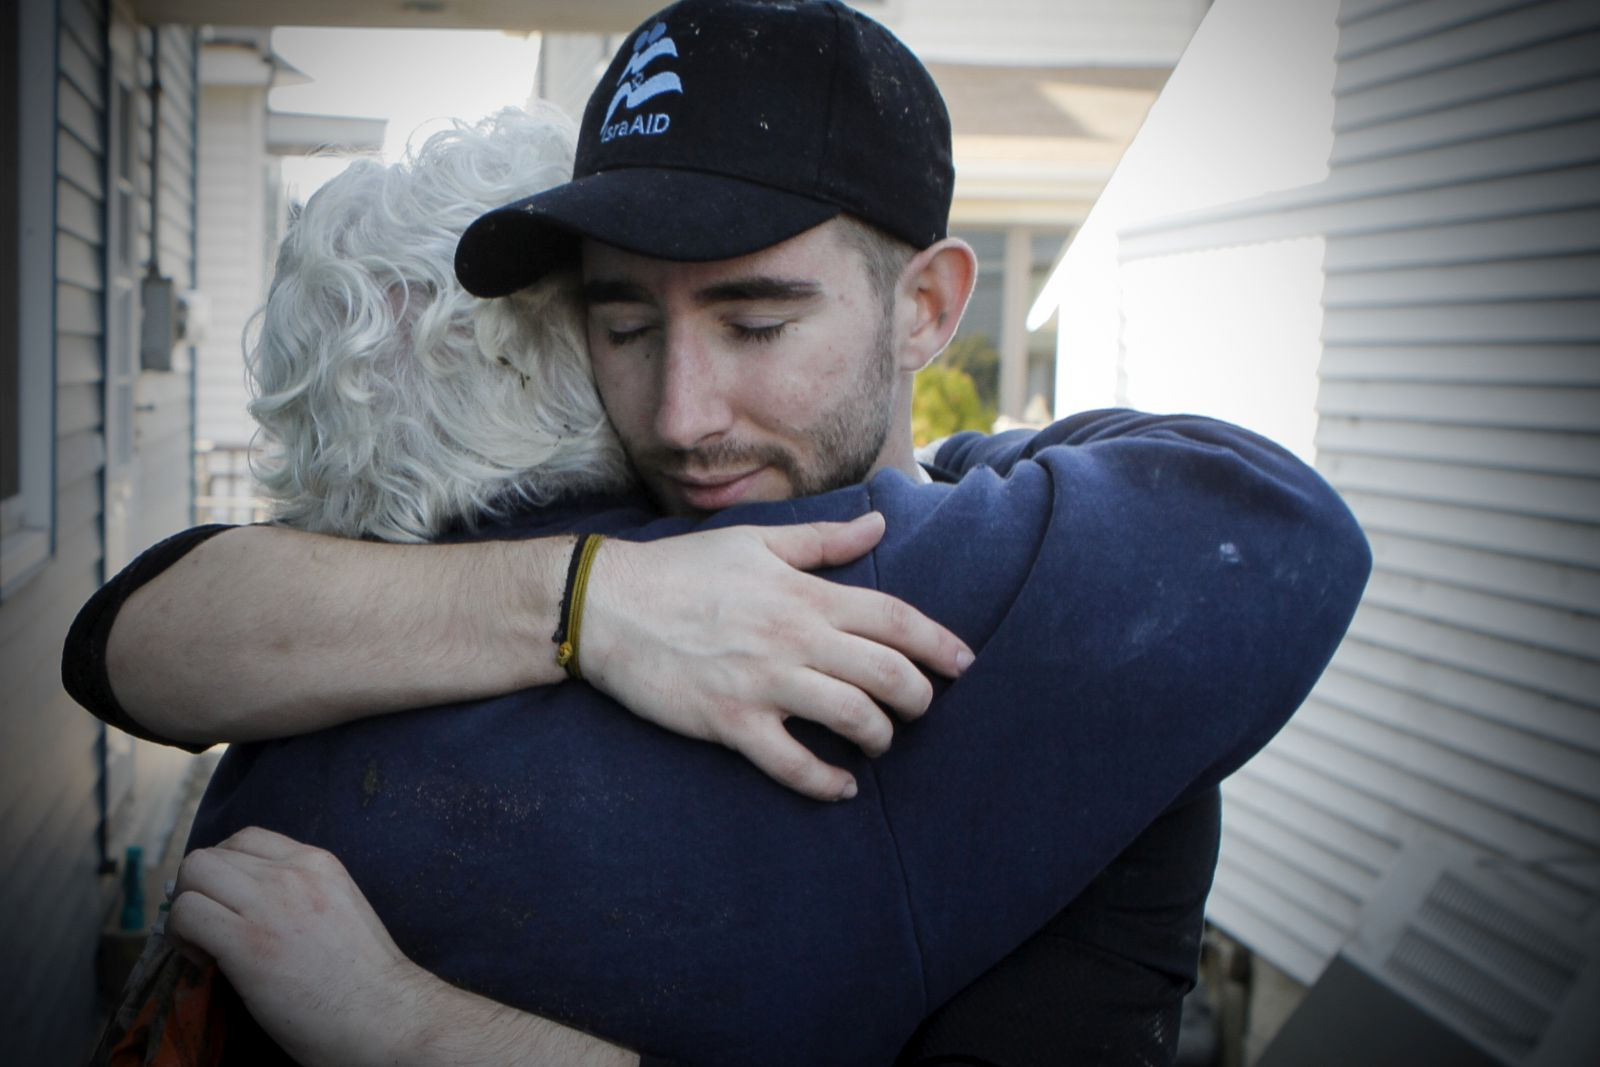 A member of IsraAid offers a supportive hug to a victim of Hurricane Sandy. Photo by Mickey Noam-Alon, IsraAid